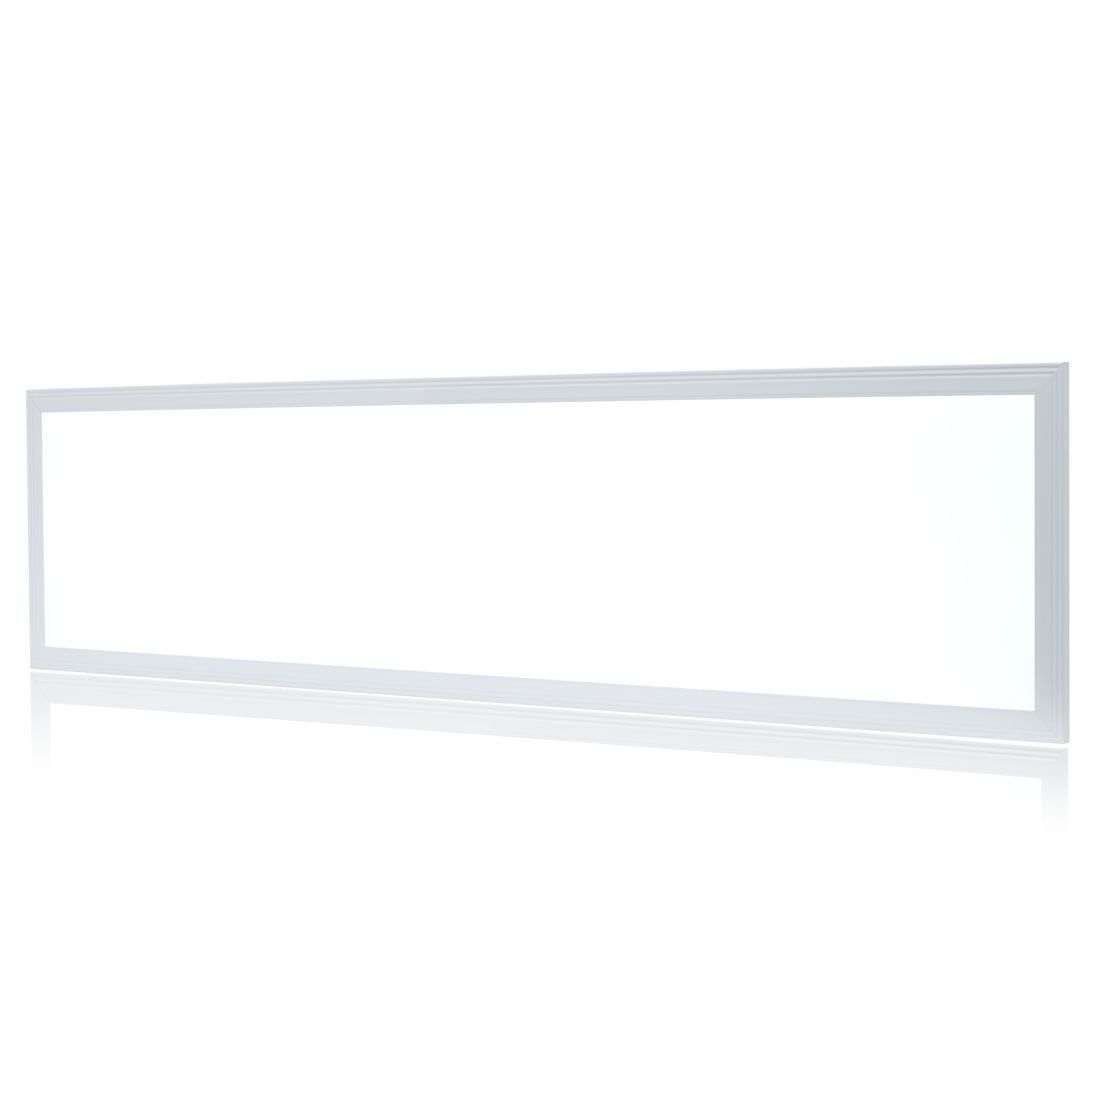 1200mm X 300mm Led Panel Light Led Panel Light